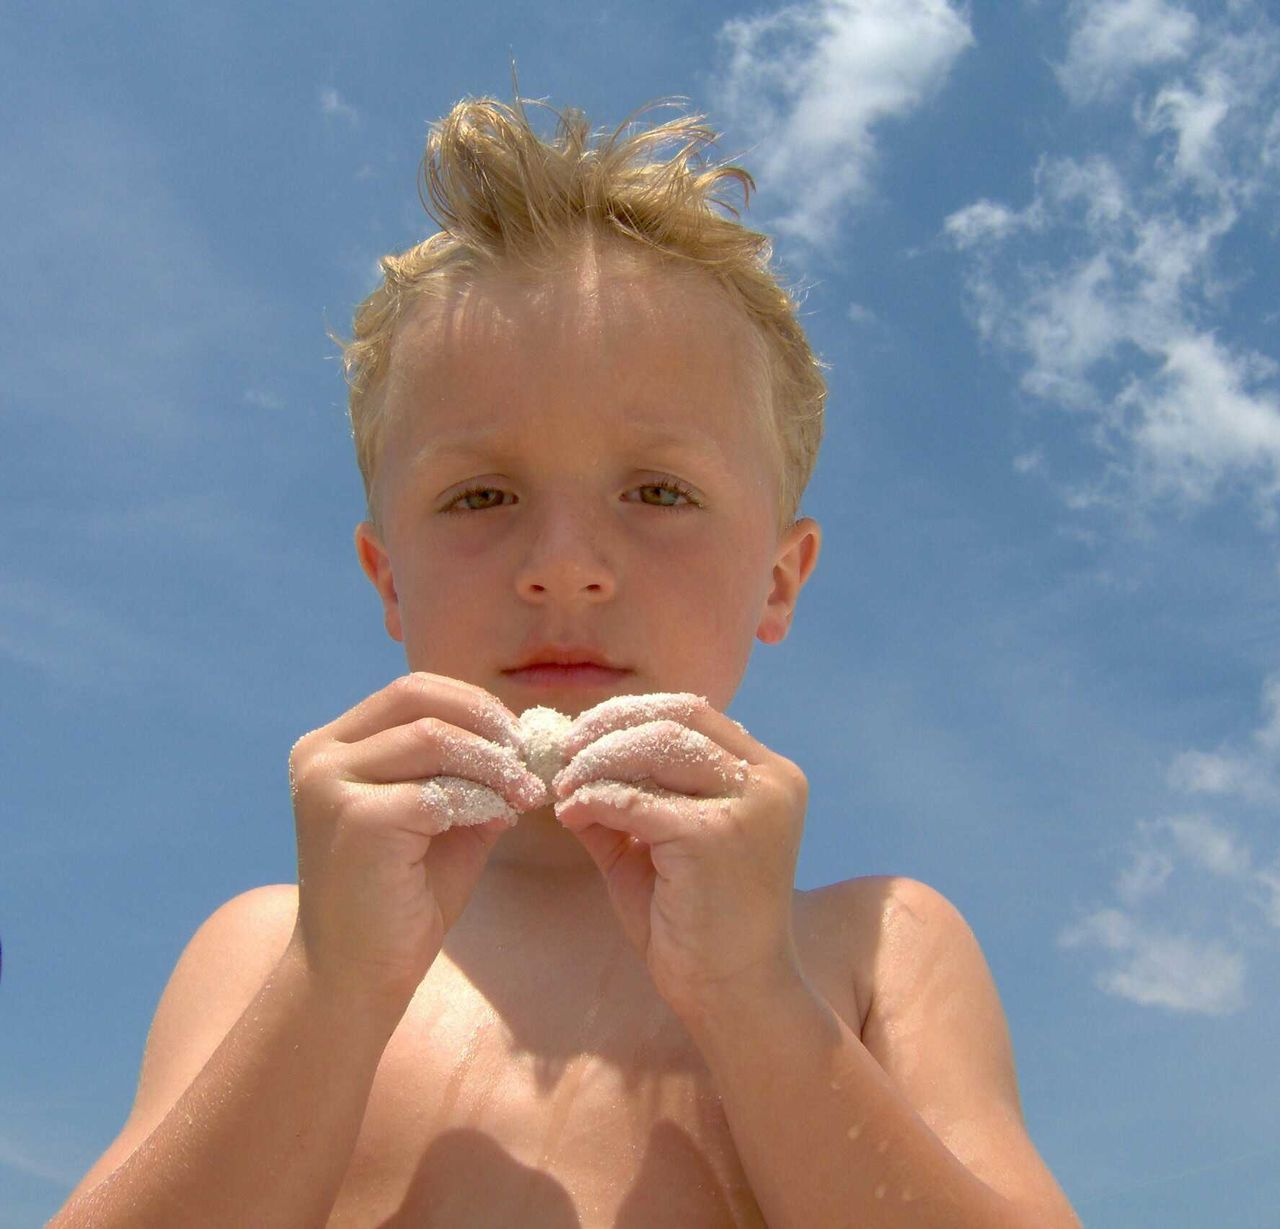 Low Angle Portrait Of Shirtless Boy Holding Sand Covered Seashell